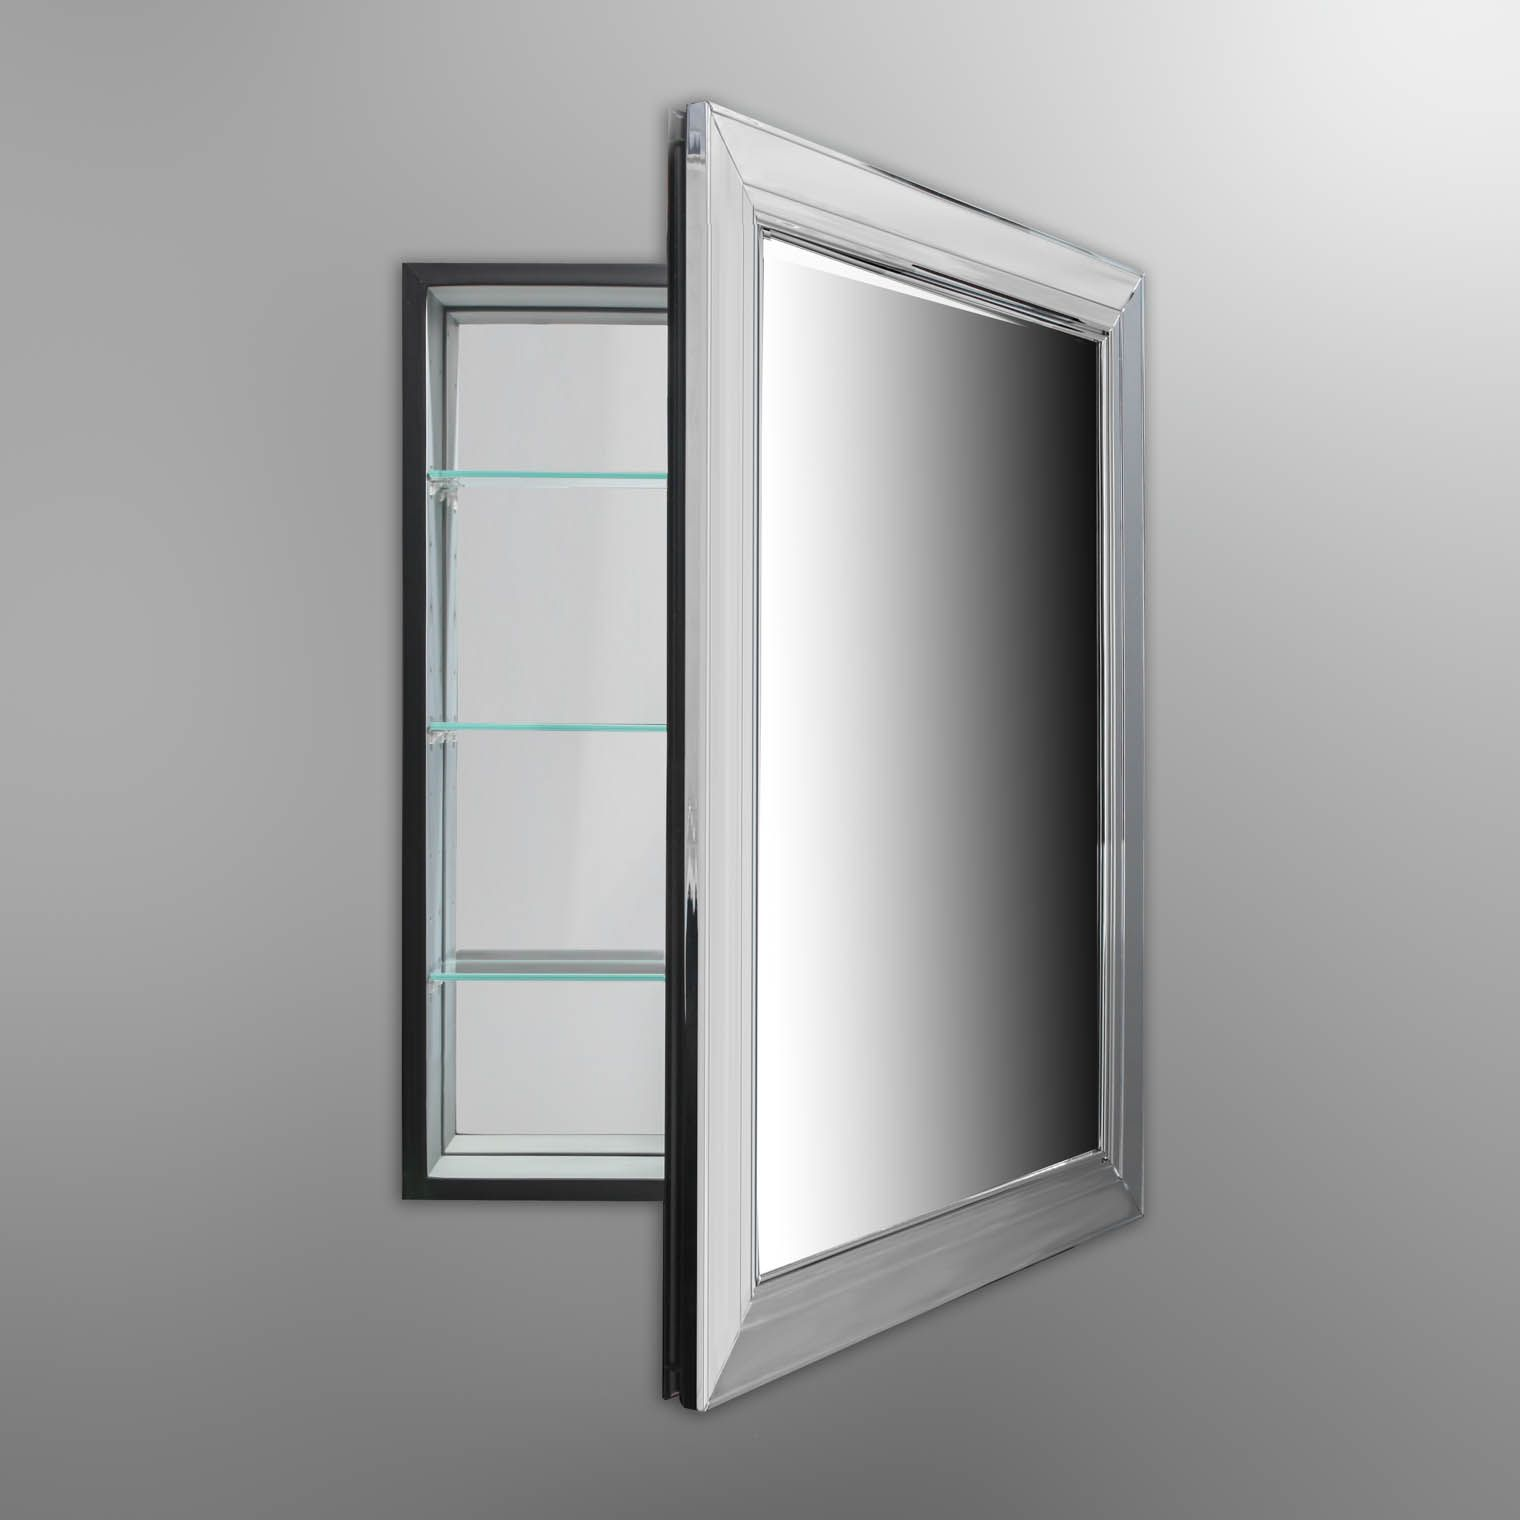 Pegasus Medicine Cabinet For Plenty Of Storage And A Mirror On The Front